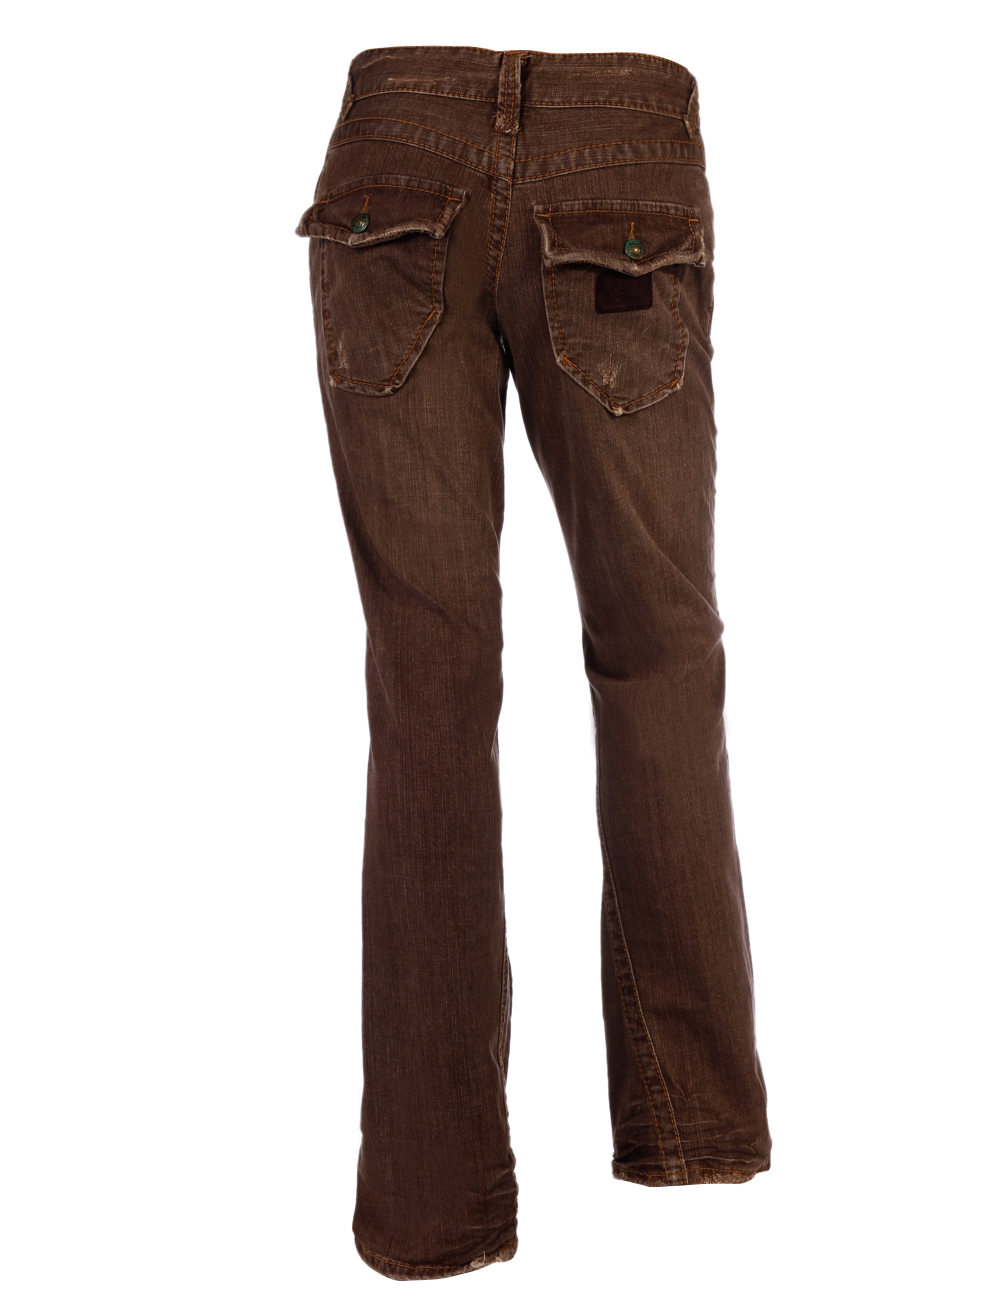 Men's Regular Fit Boot-Cut Jeans. Product - Women's Plus-Size 4-Pocket Stretch Bootcut Jeans, Available in Regular and Petite Lengths. Best Seller. Product Image. Price $ Product Title. Women's Plus-Size 4-Pocket Stretch Bootcut Jeans, Available in Regular and Petite Lengths.